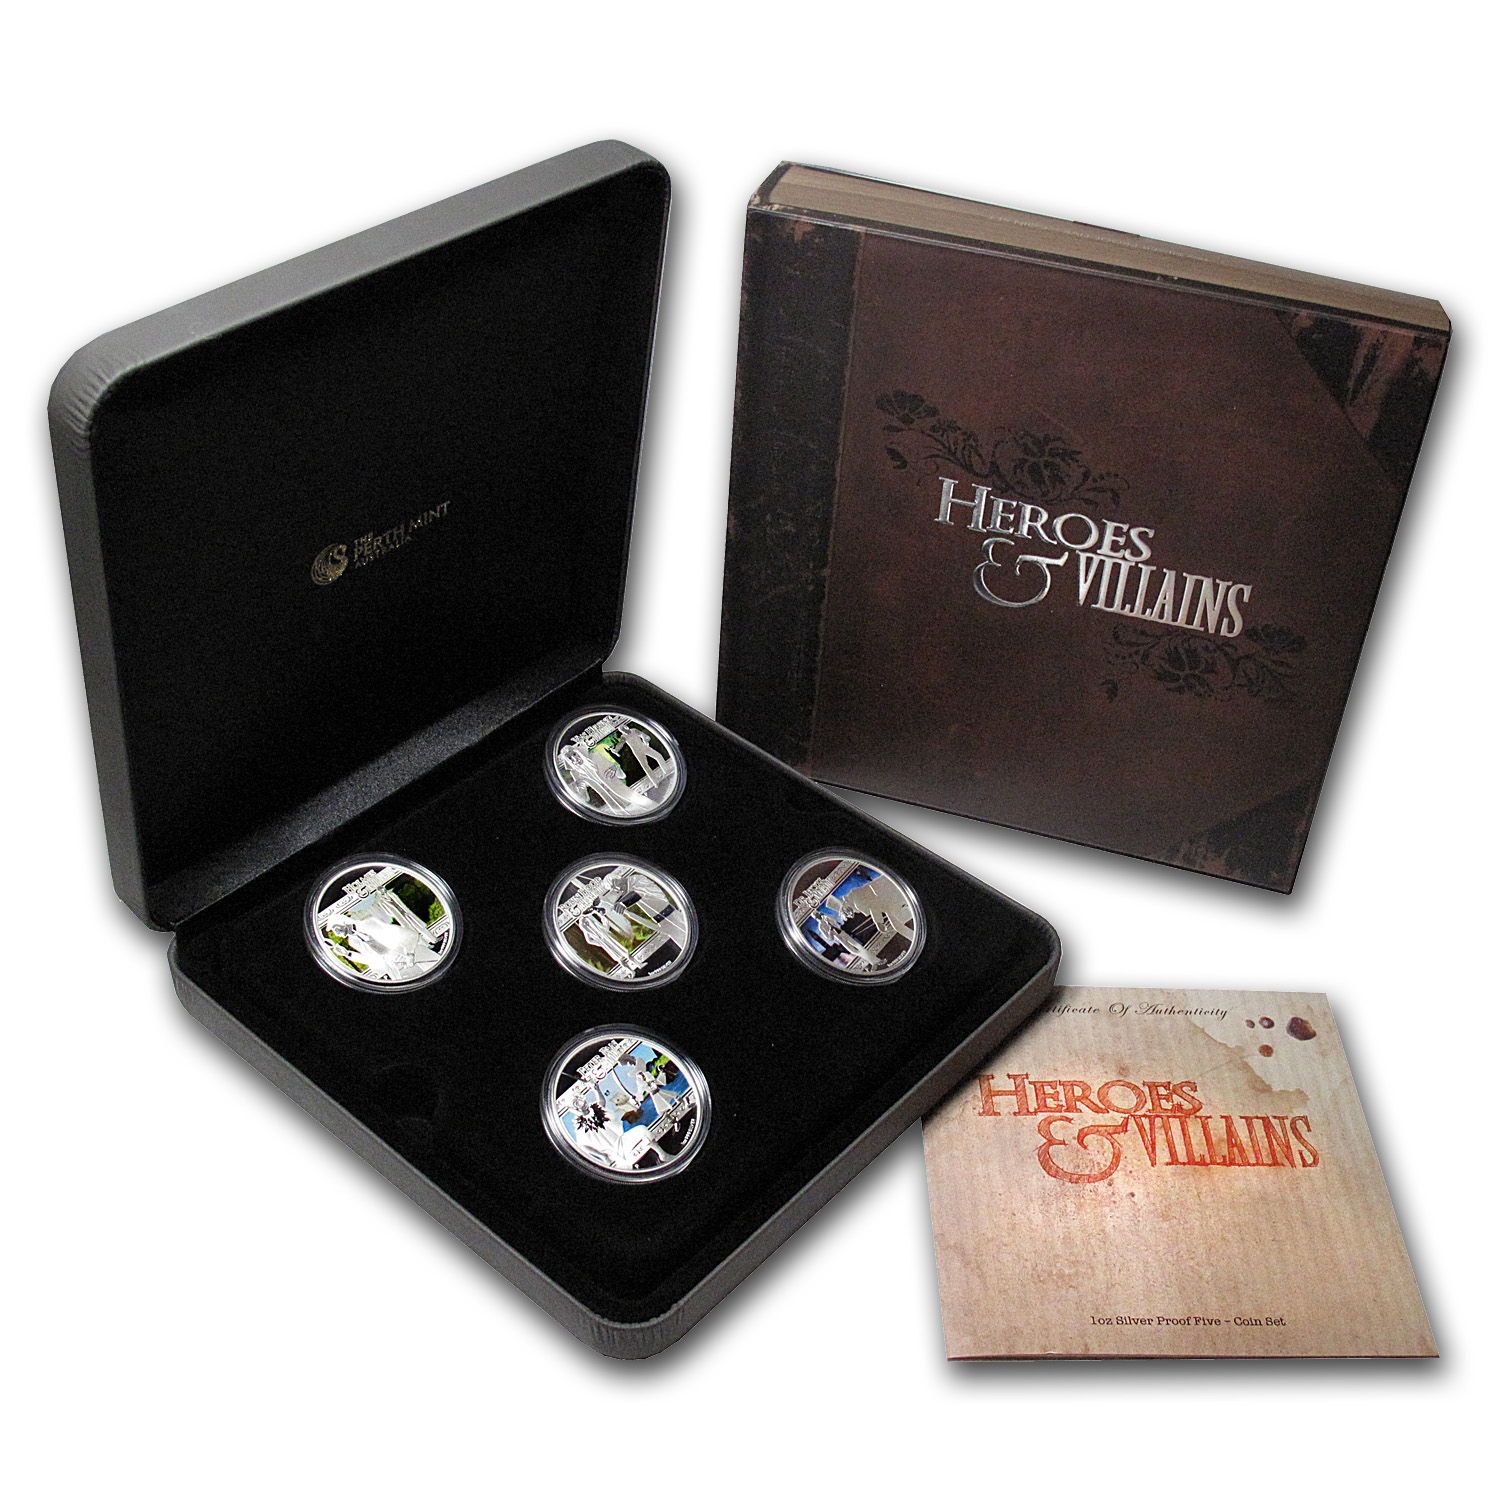 2011 1 oz Proof Silver Heroes and Villains 5 Coin Set